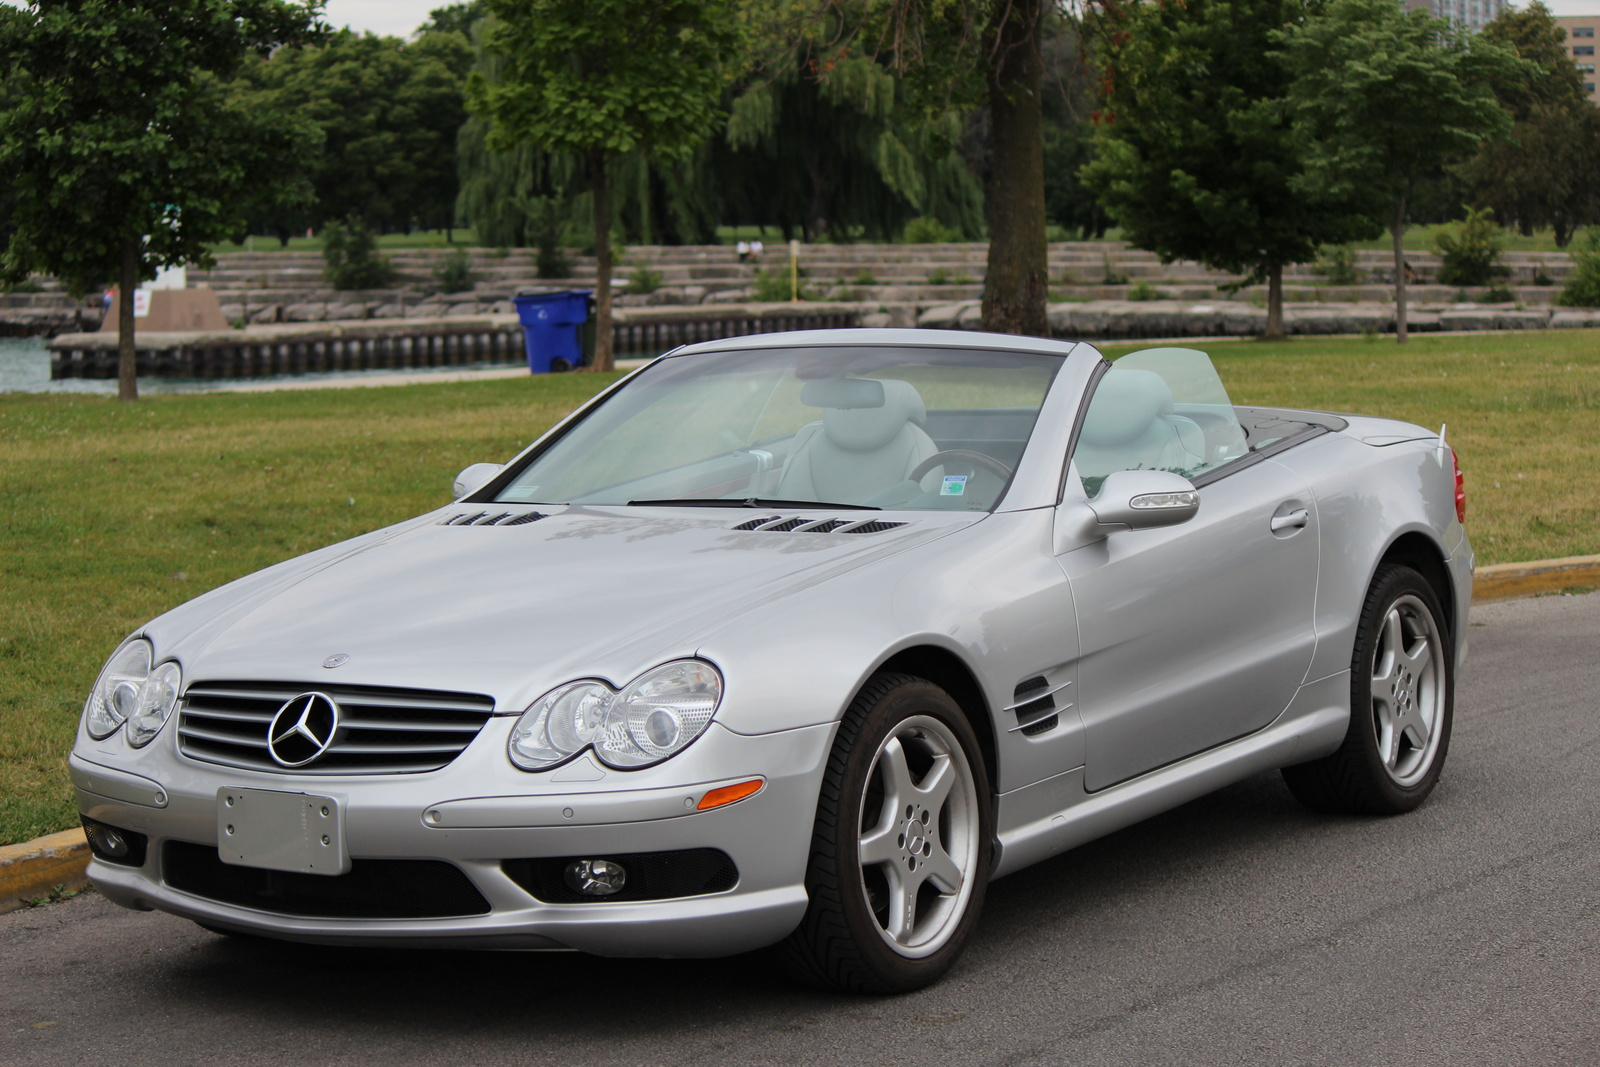 2003 mercedes benz sl class pictures cargurus for Mercedes benz 2003